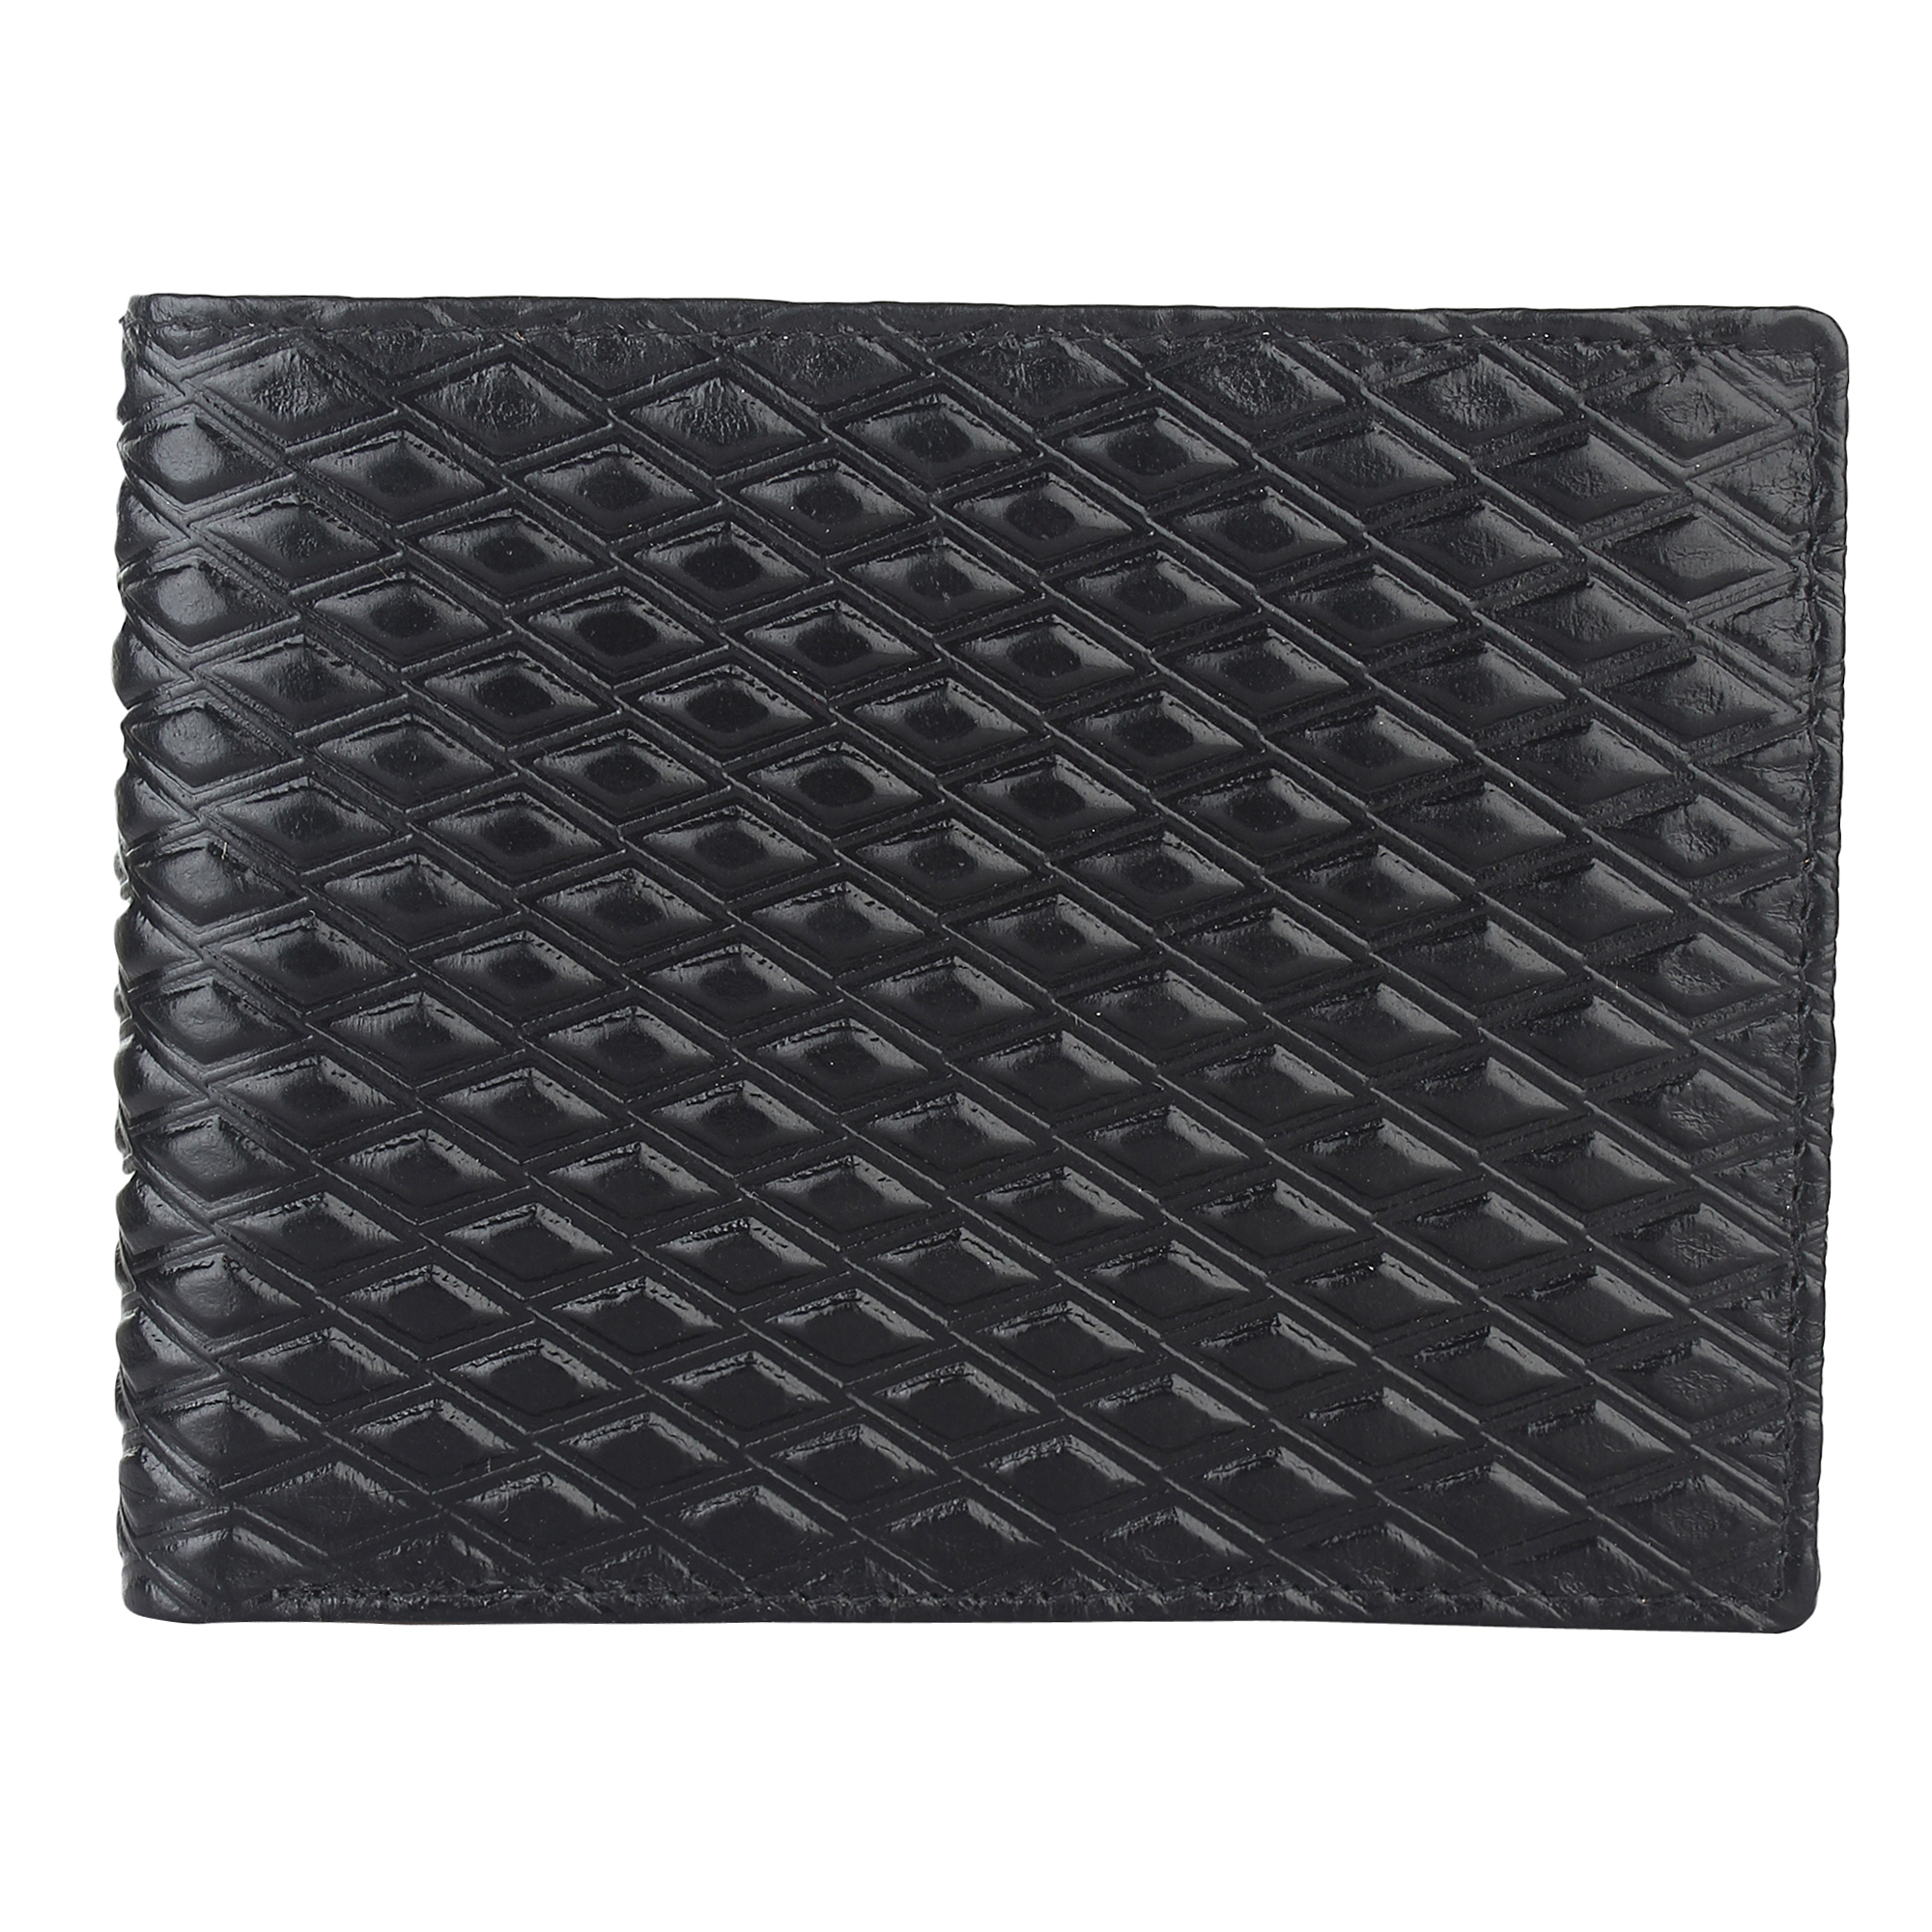 Leather Wallets Manufacturers in Ontario, Leather Wallets Suppliers in Ontario, Leather Wallets Wholesalers in Ontario, Leather Wallets Traders in Ontario, custom leather wallet manufacturers in Ontario, Leathe